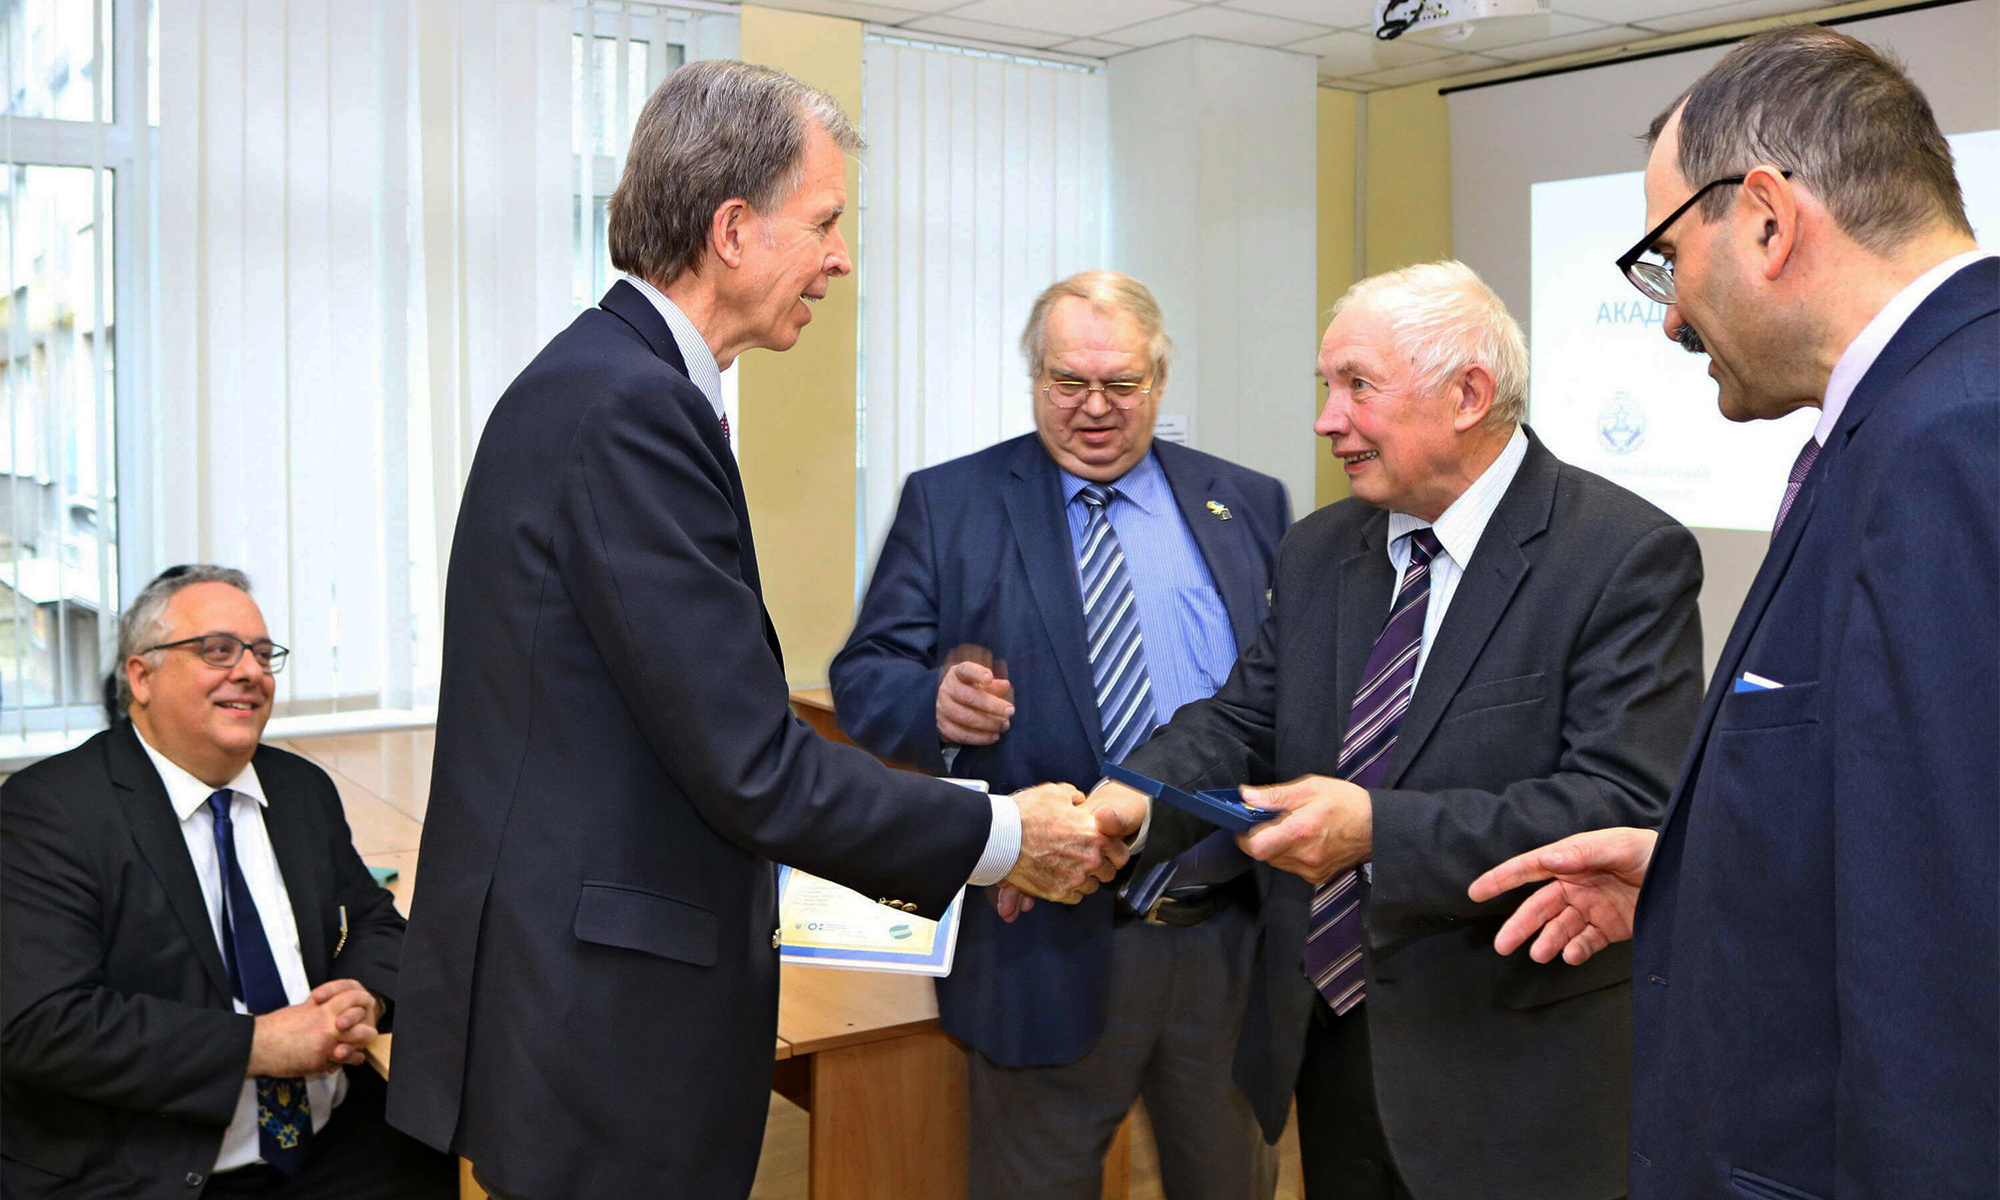 Dr. David Birner meets with Ukrainian university leaders.